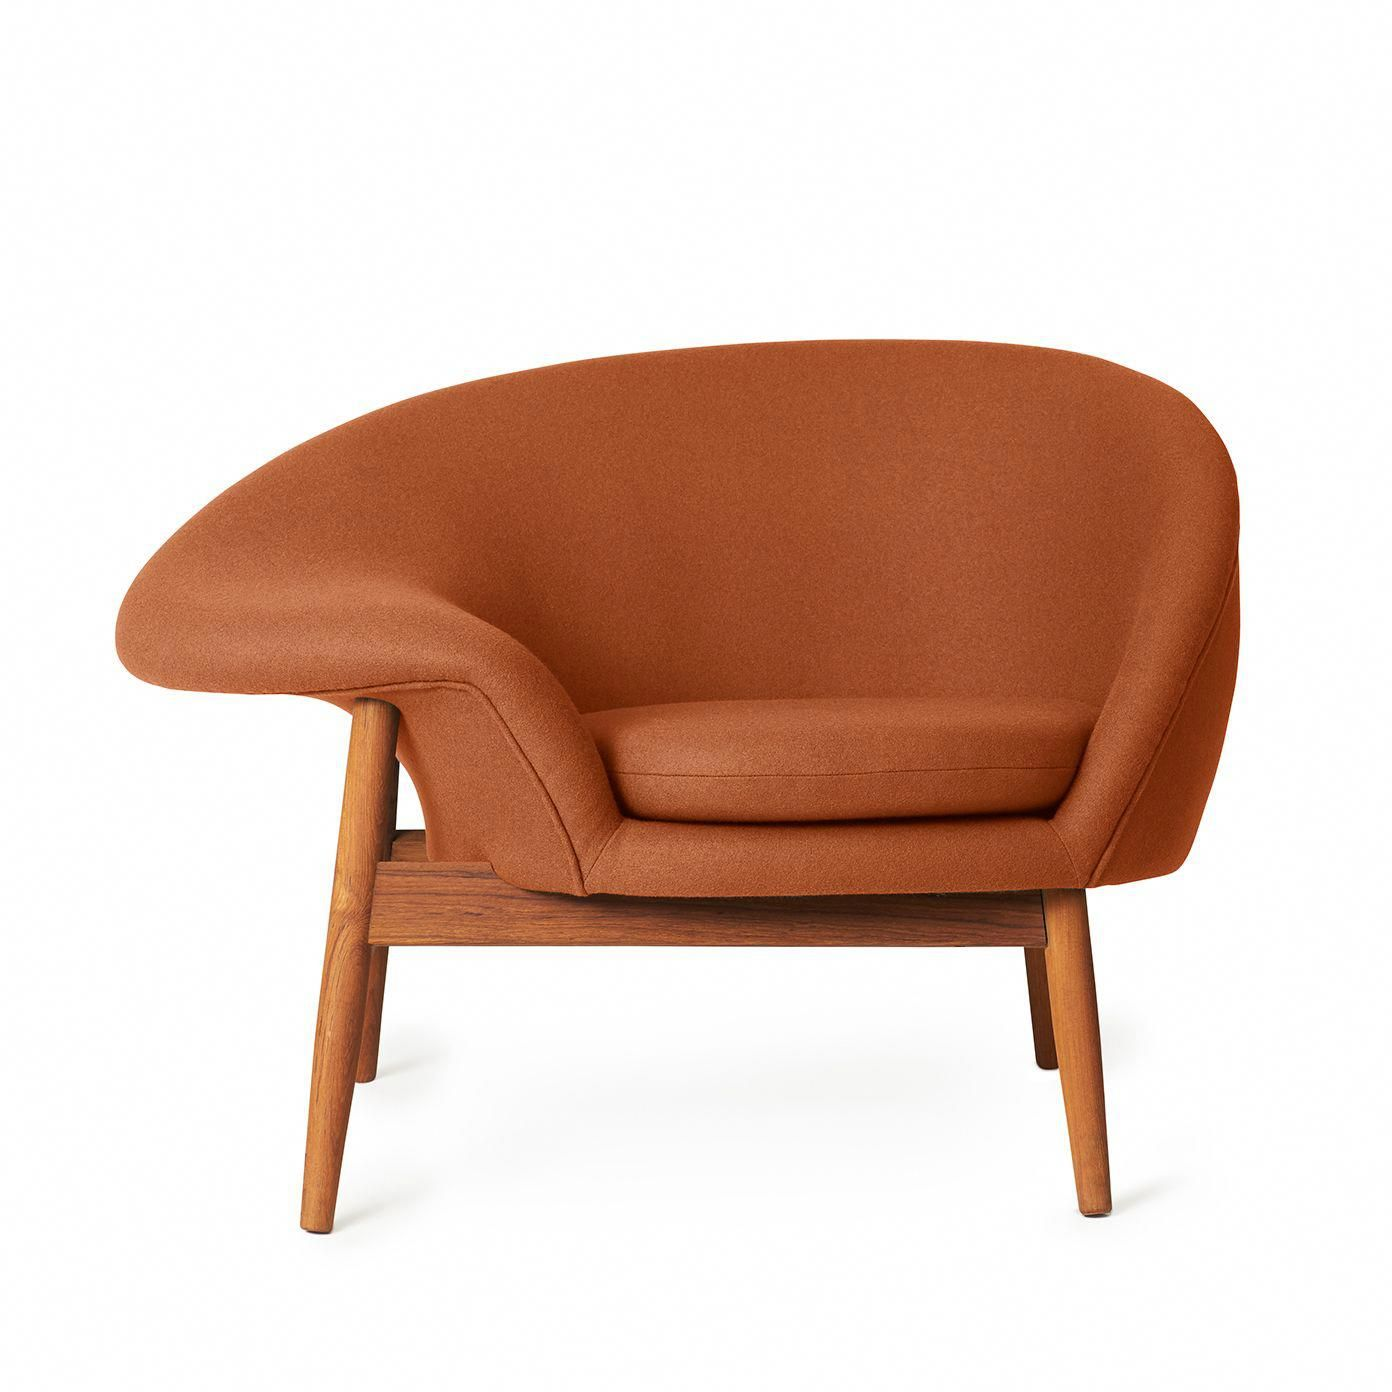 Chairs At Ashley Furniture Info 4390618779 Fauteuil Uchiwa